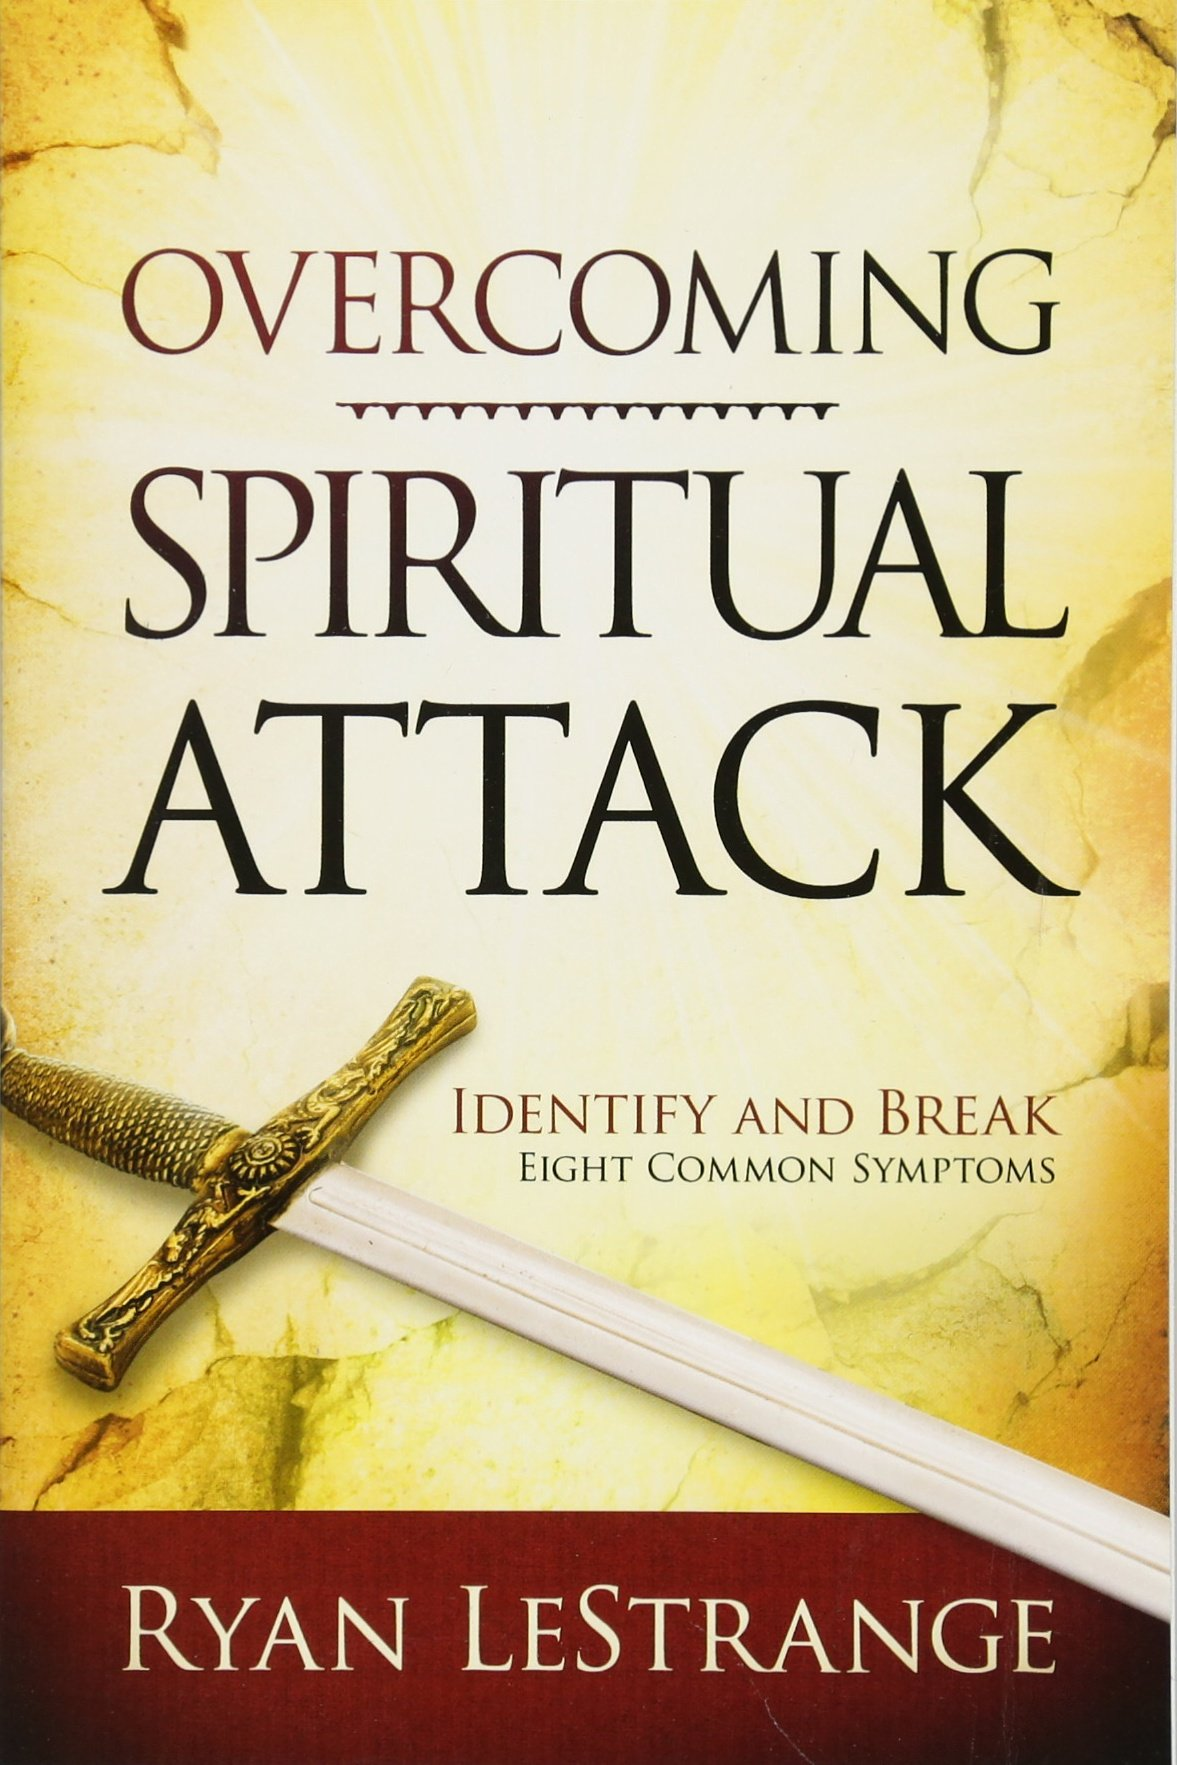 Overcoming Spiritual Attack: Identify and Break Eight Common Symptoms PDF